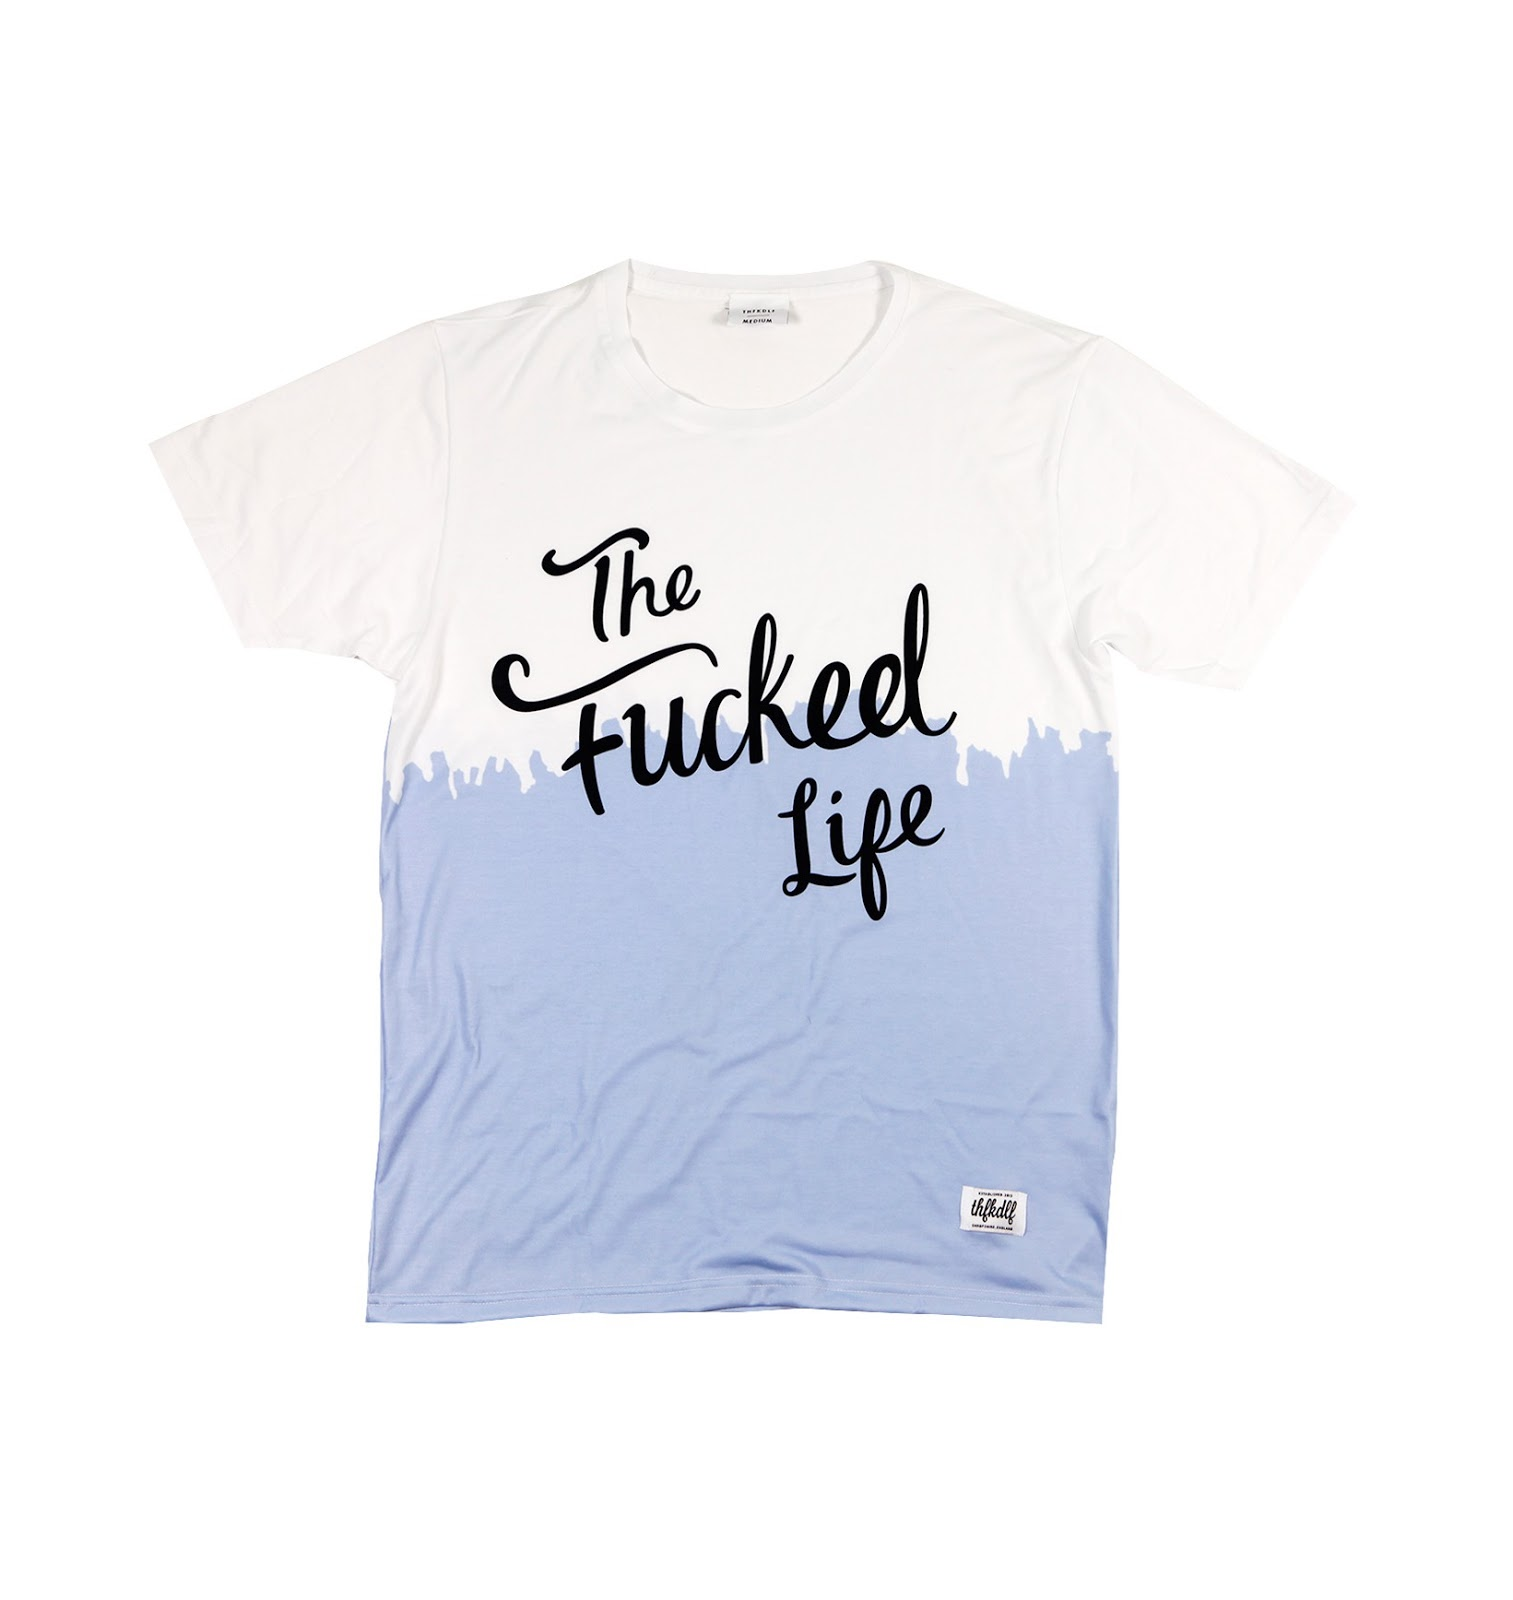 https://grafitee.es/s/camisetas/904-t-shirt-the-fucked-life-dip-dye.html